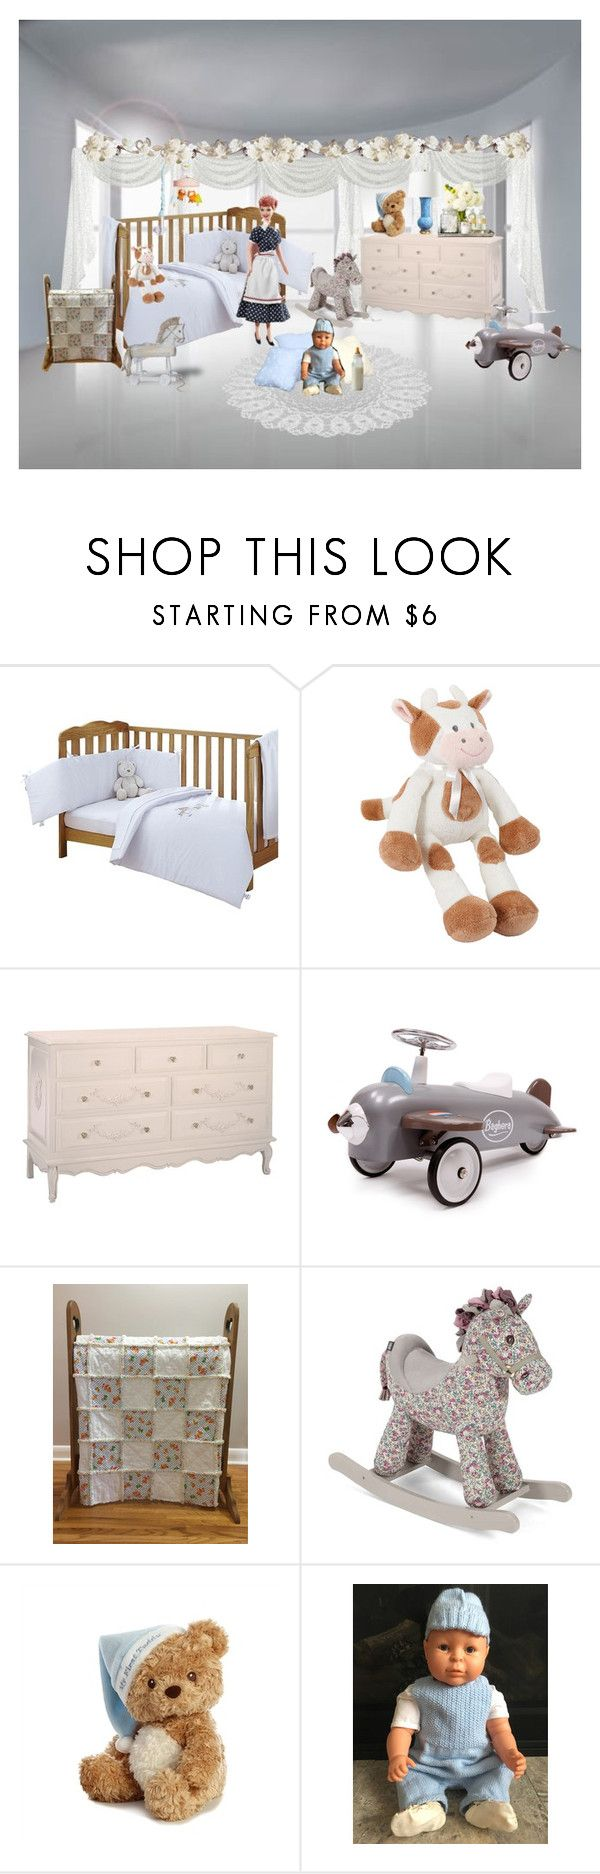 Handmade Baby Boy Items by bamasbabes on Polyvore featuring Mamas & Papas, Episode, Baghera and Bungalow 5